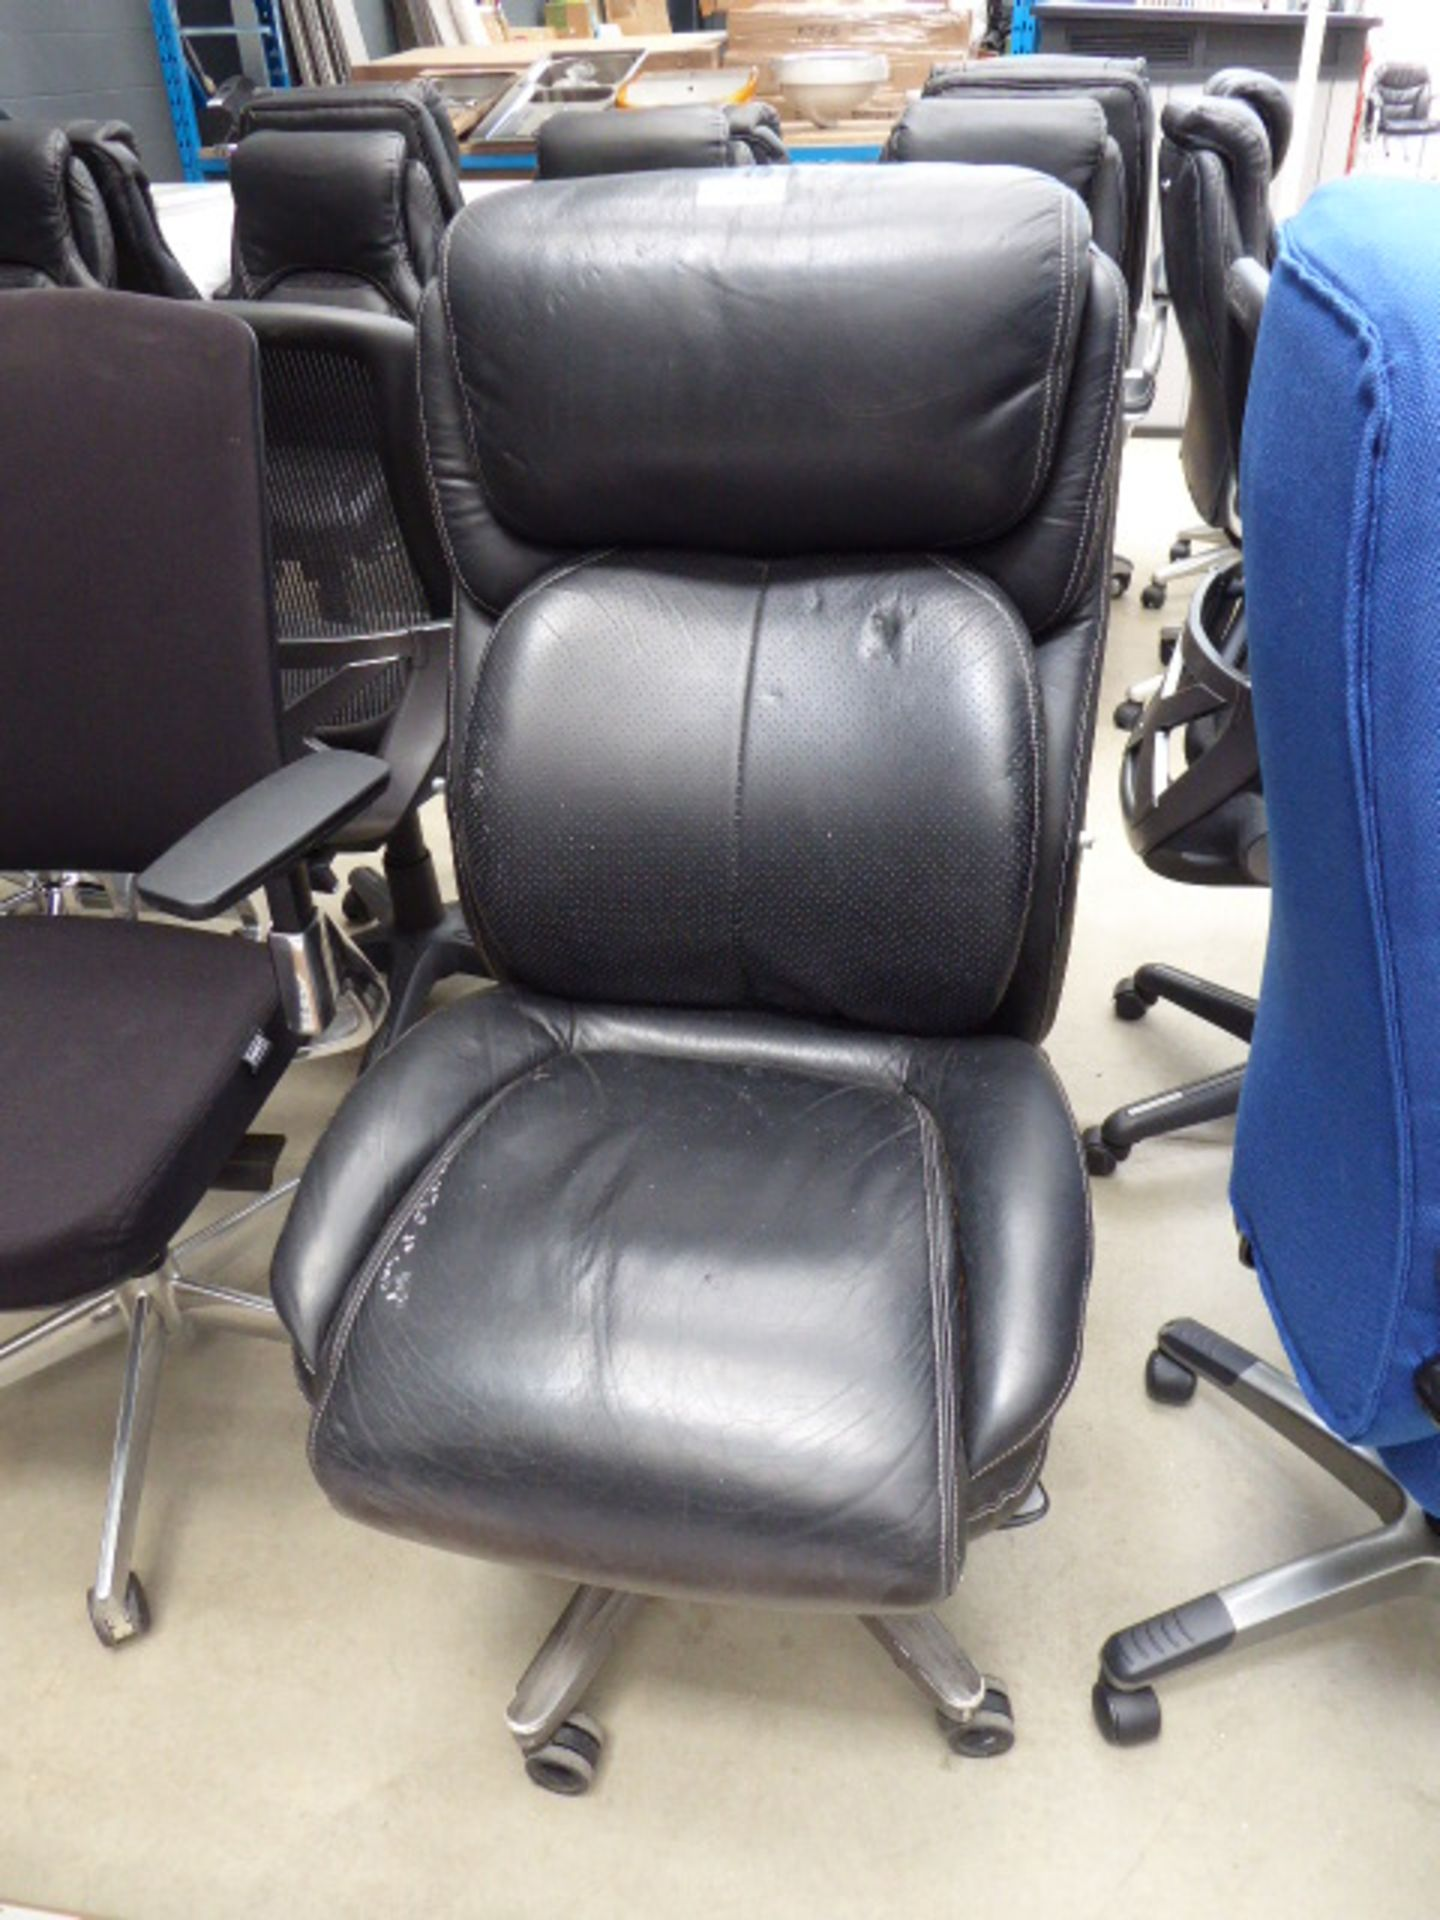 Lot 4231 - Black high back swivel chair no arms